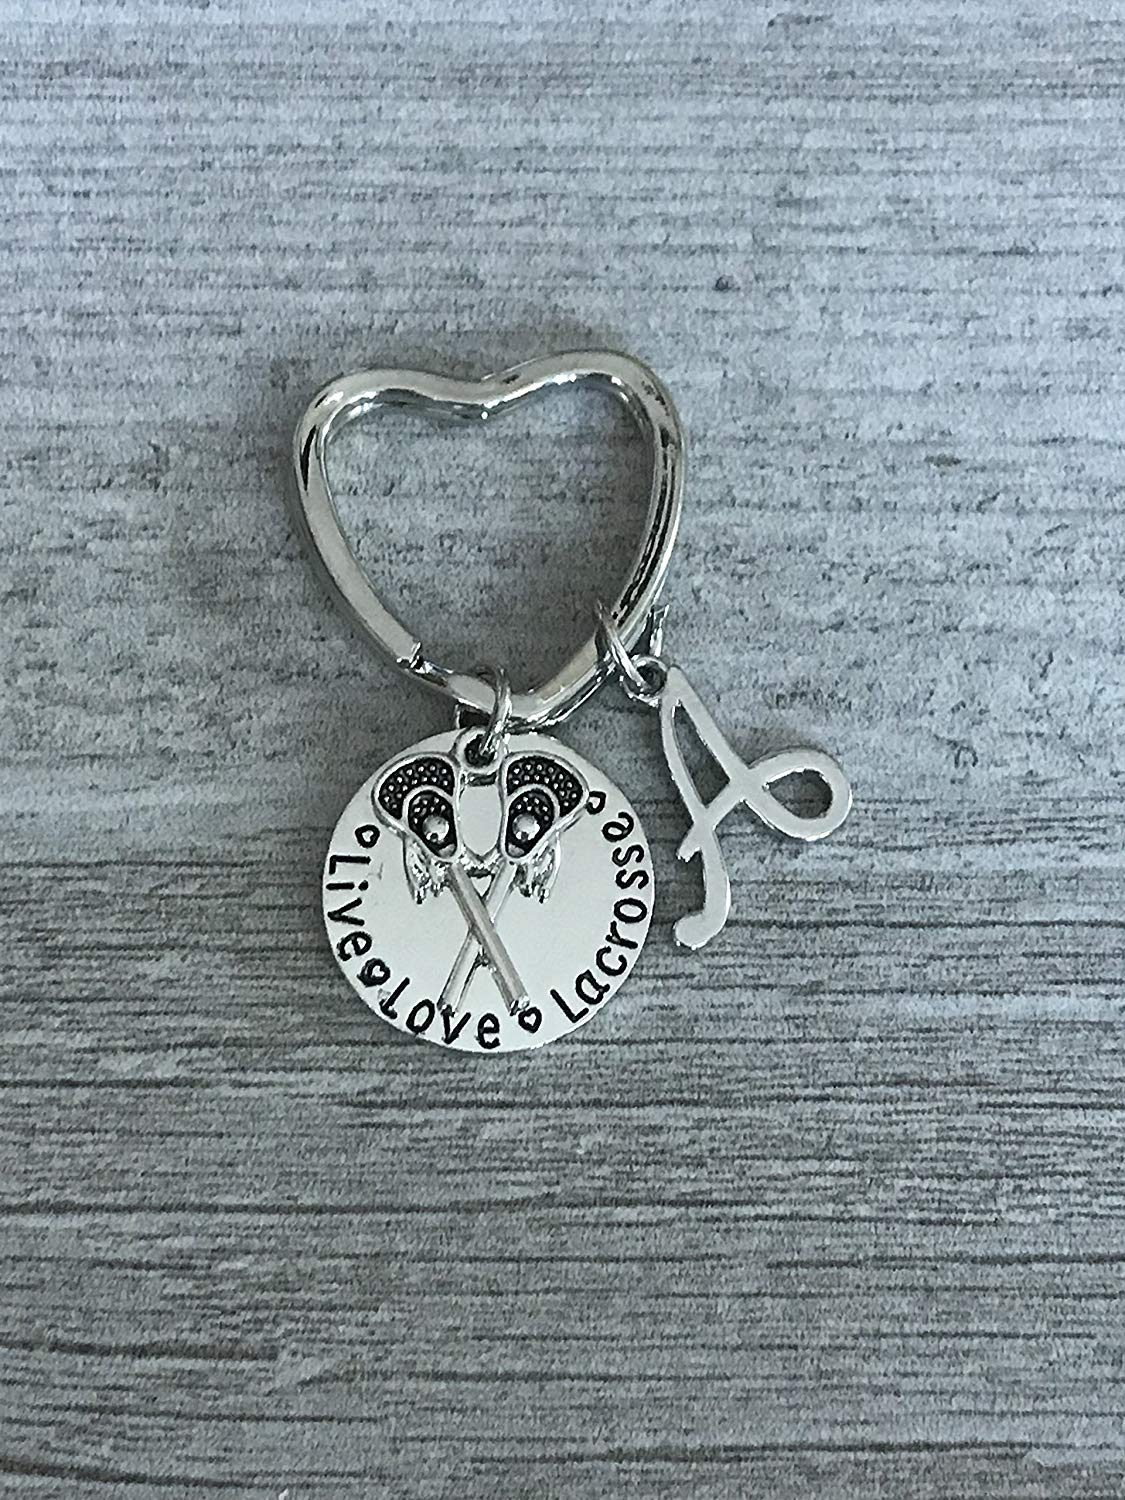 Get Quotations · Personalized Live Love Lacrosse Keychain with Letter Charm, Custom Lacrosse Gift, Girls Lax Jewelry